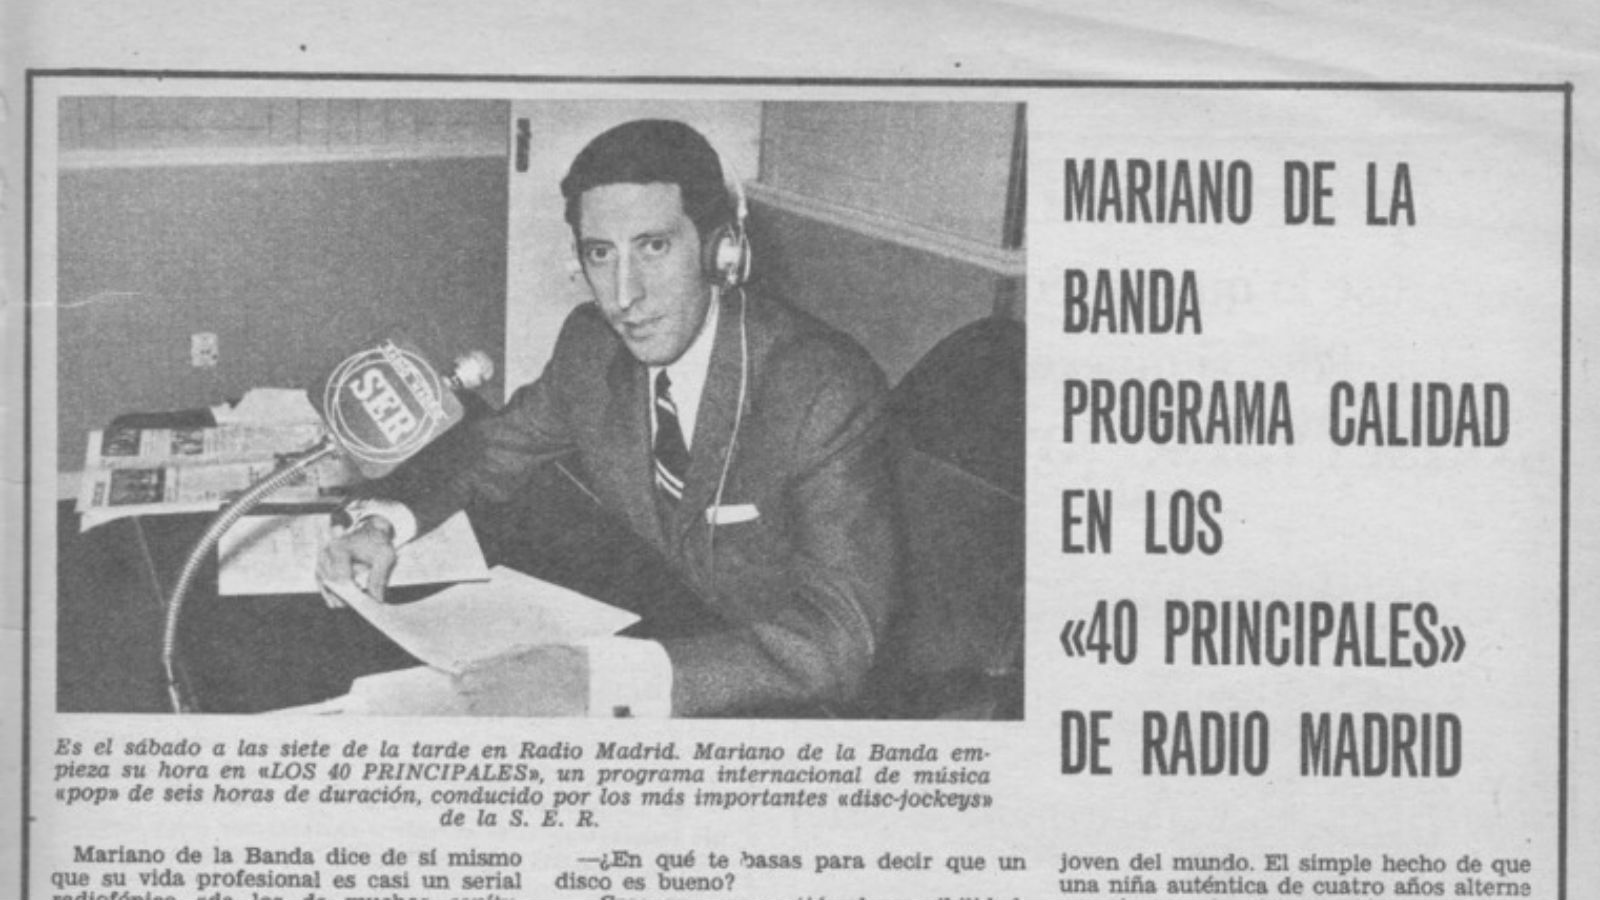 Mariano de Labanda, local en Radio Madrid, El Gran Musical.